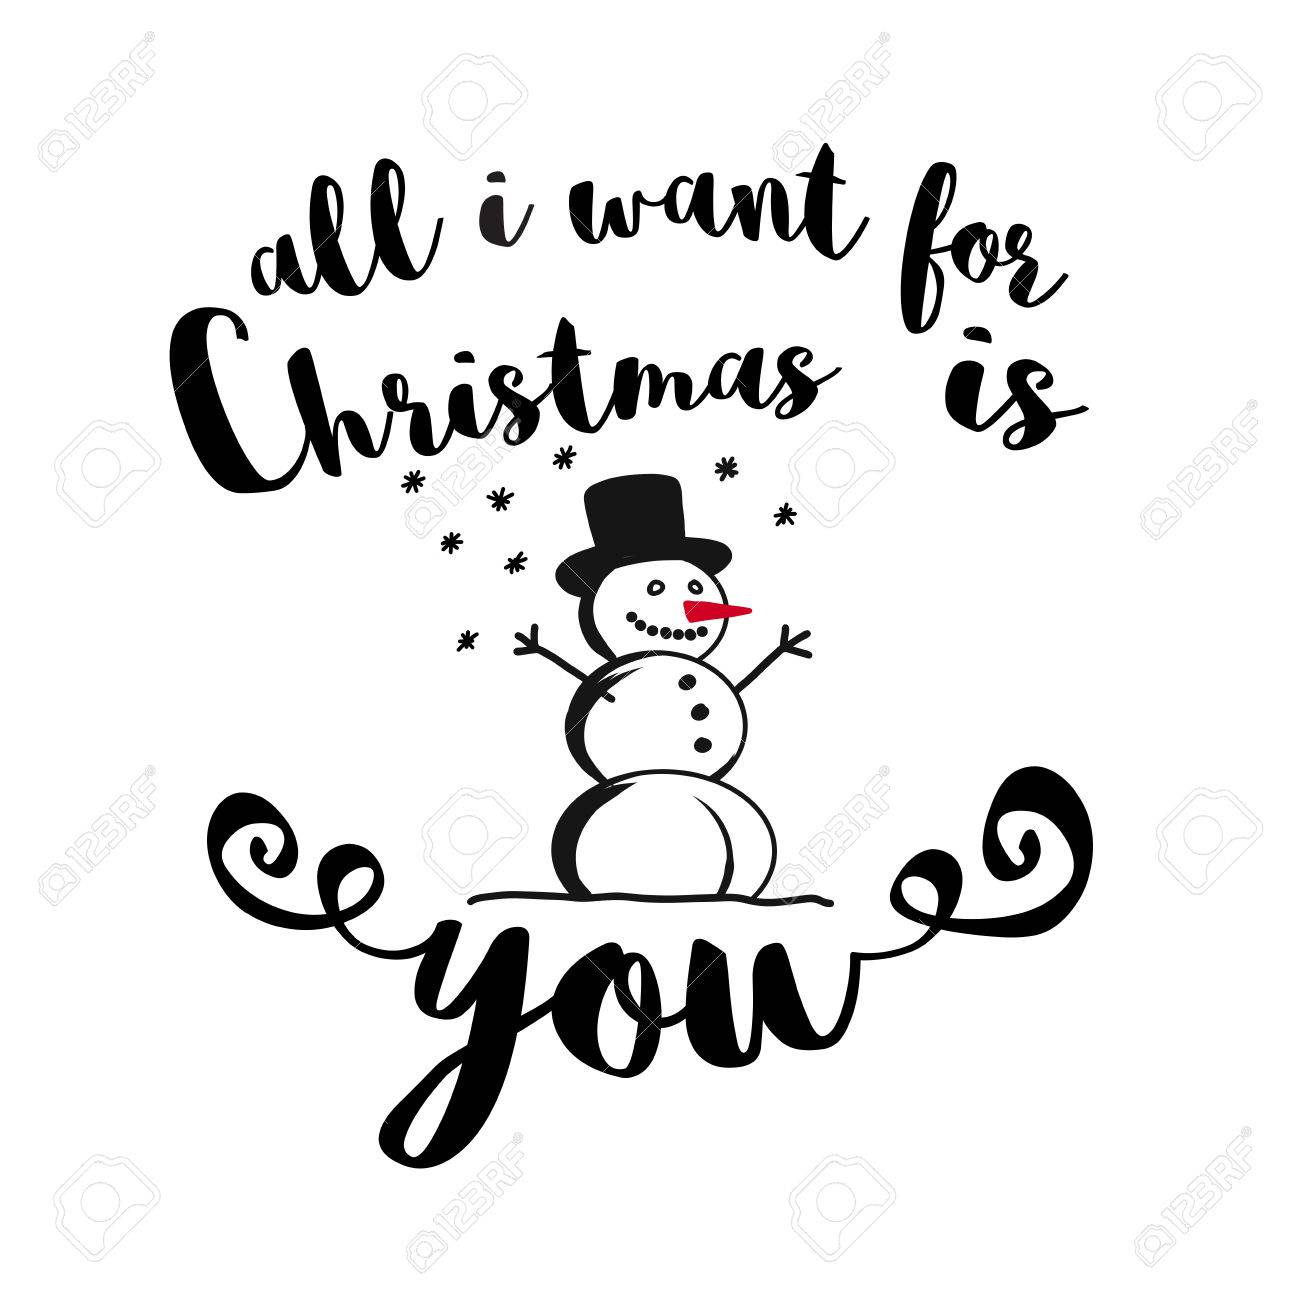 All I Want For Christmas Is You Quote With Snowman, Hand Written ...